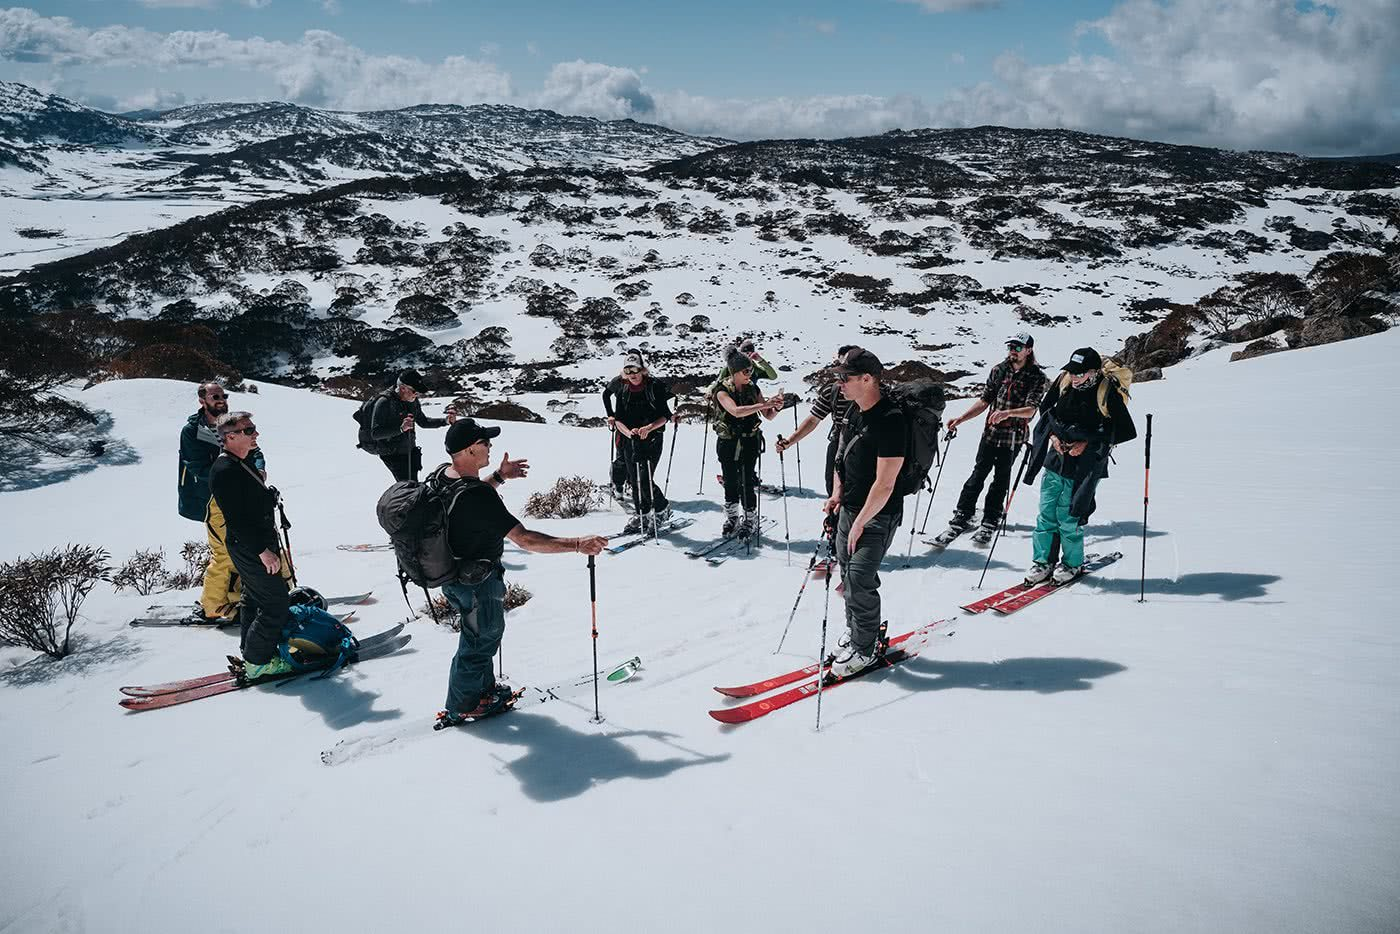 Wait, Australia Has Backcountry Skiing? Is It Any Good? Photo by Ain Raadick or Ben Savage, Arc'teryx event, snow, skiers, group, instruction